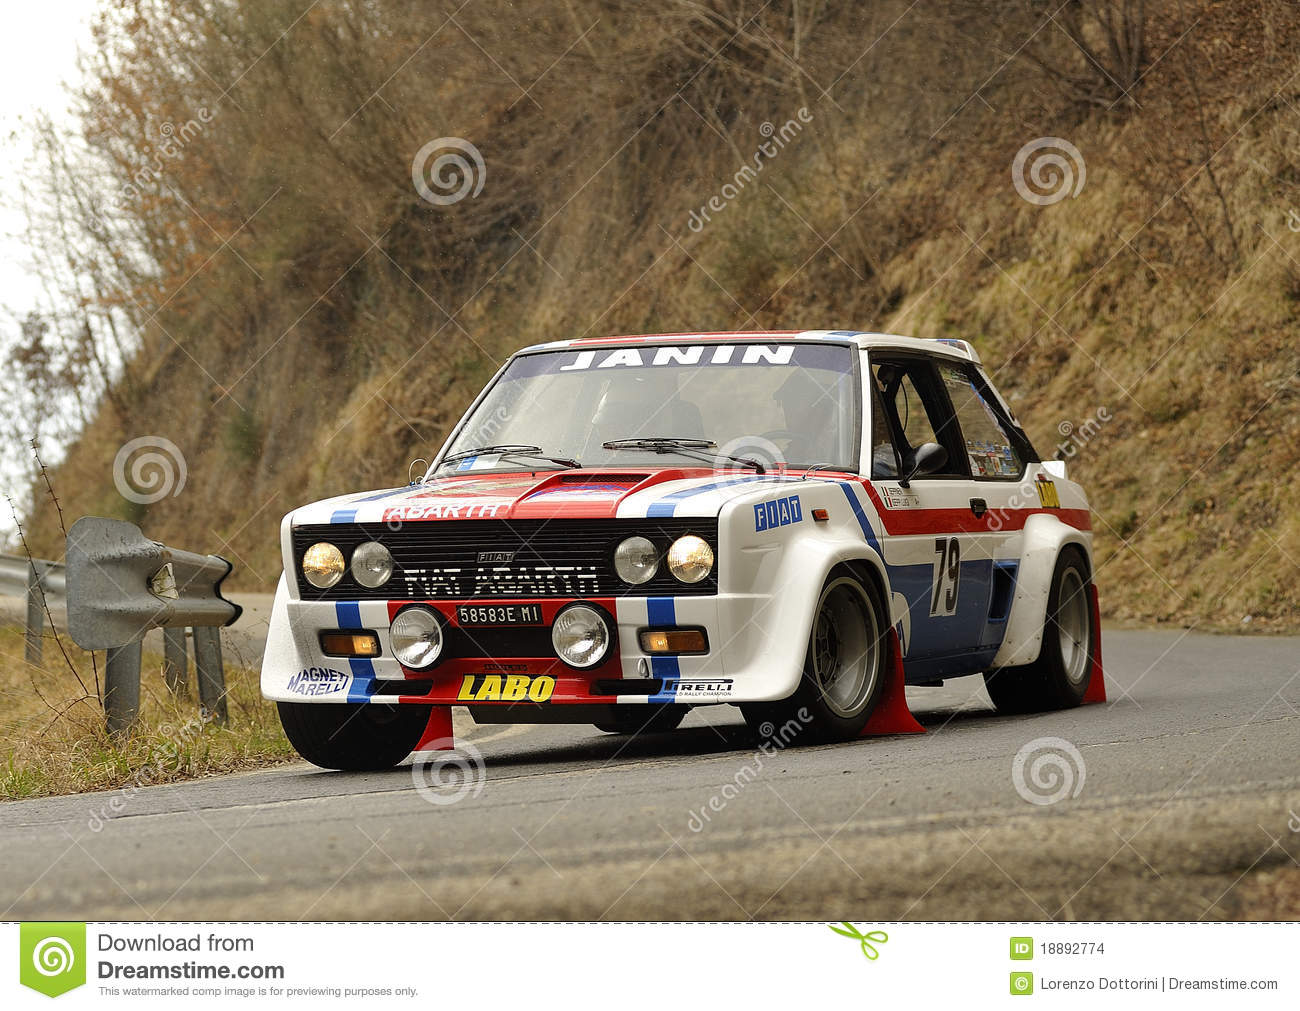 Fiat 131 Abarth on race during the 1th edition of Vallate Aretine ...